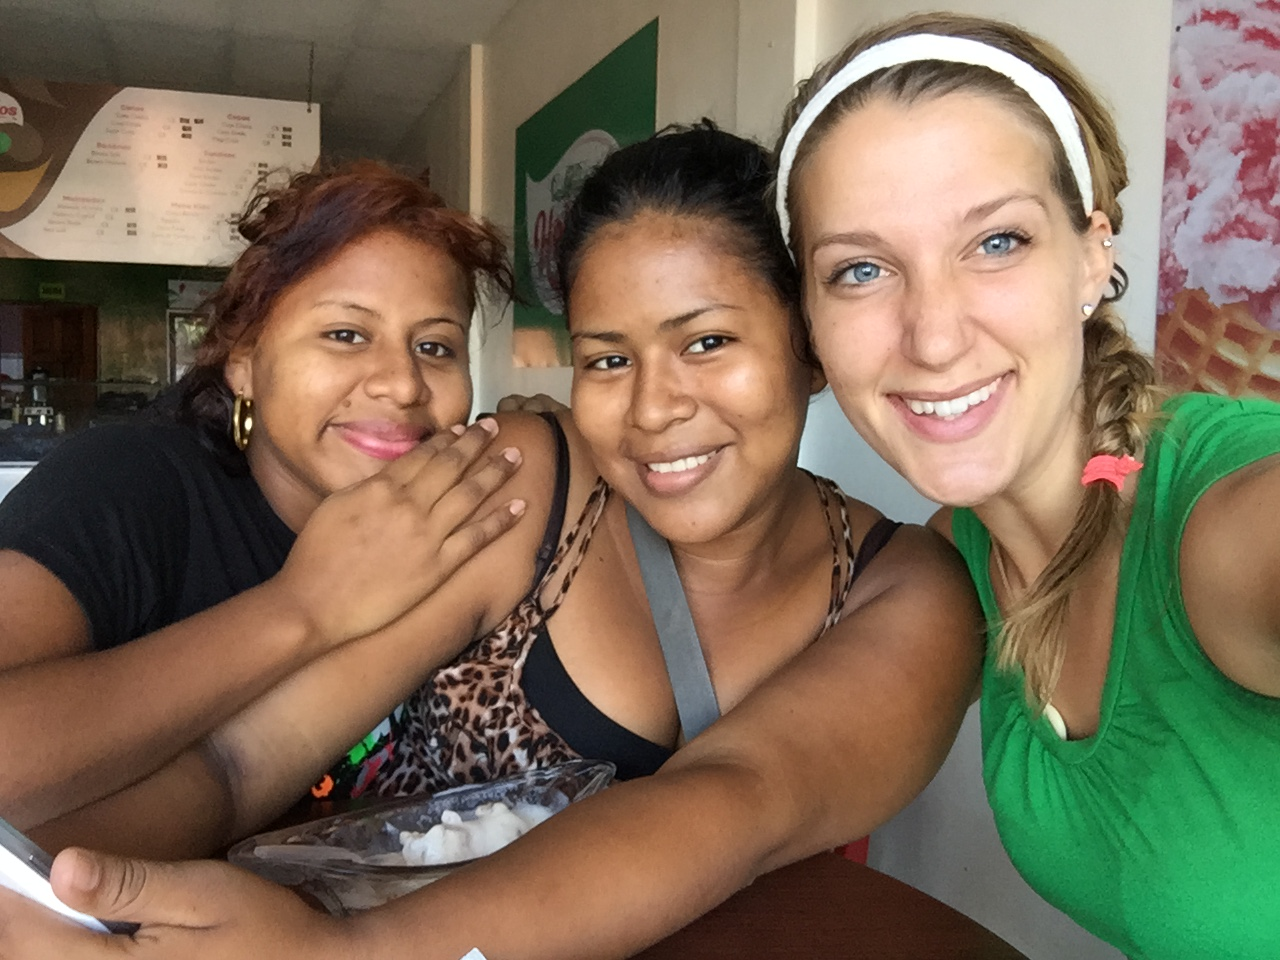 Diana and Chickymaria with TOLI leader Emily (right) at their first business meeting, brainstorming ideas.